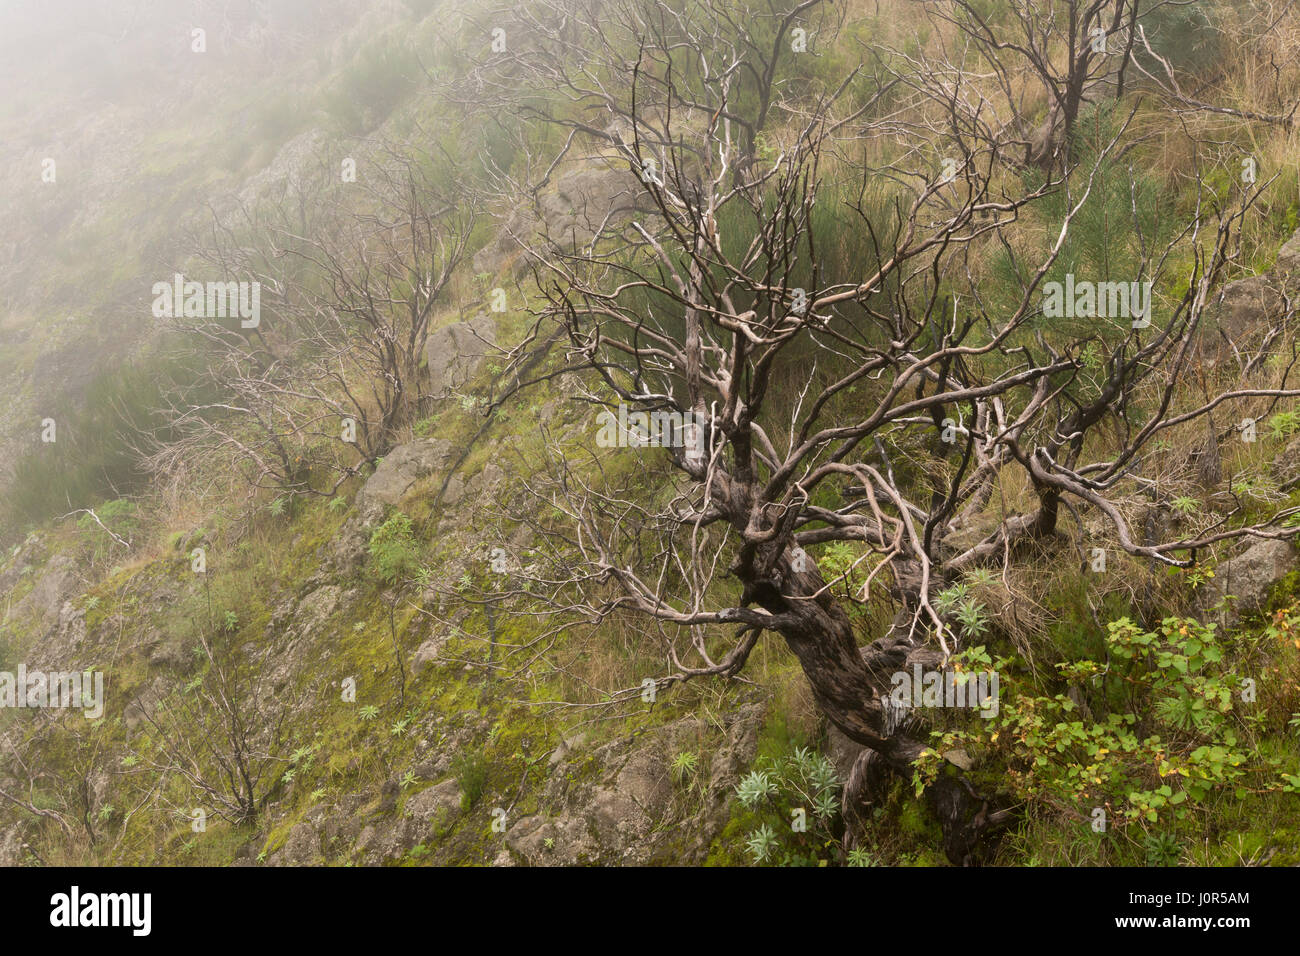 A twisted and blackened tree showing fire damage from a forest fire started by arson in August 2016, above Curral - Stock Image